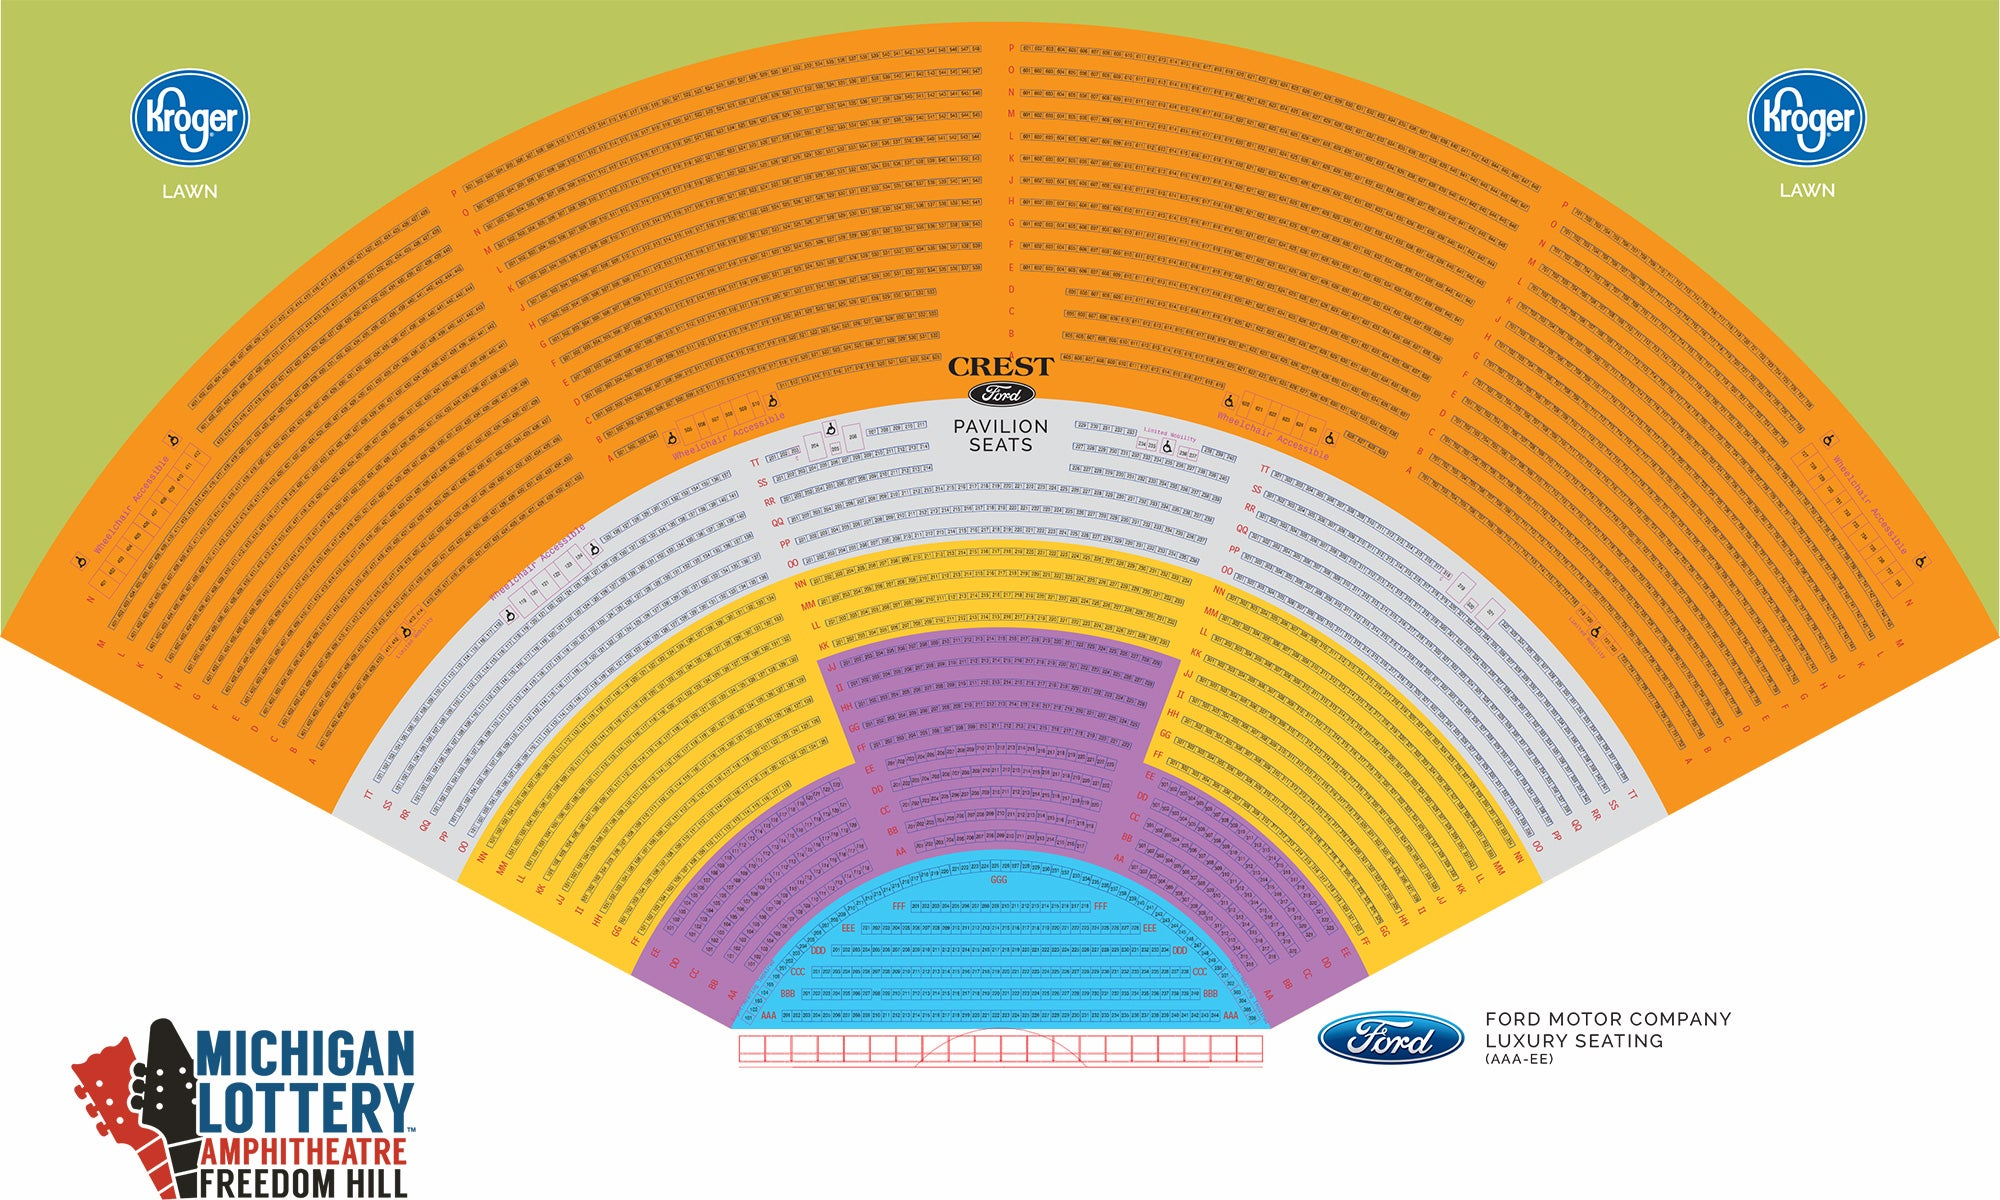 Michigan Lottery Amphitheatre at Freedom Hill Seating Map